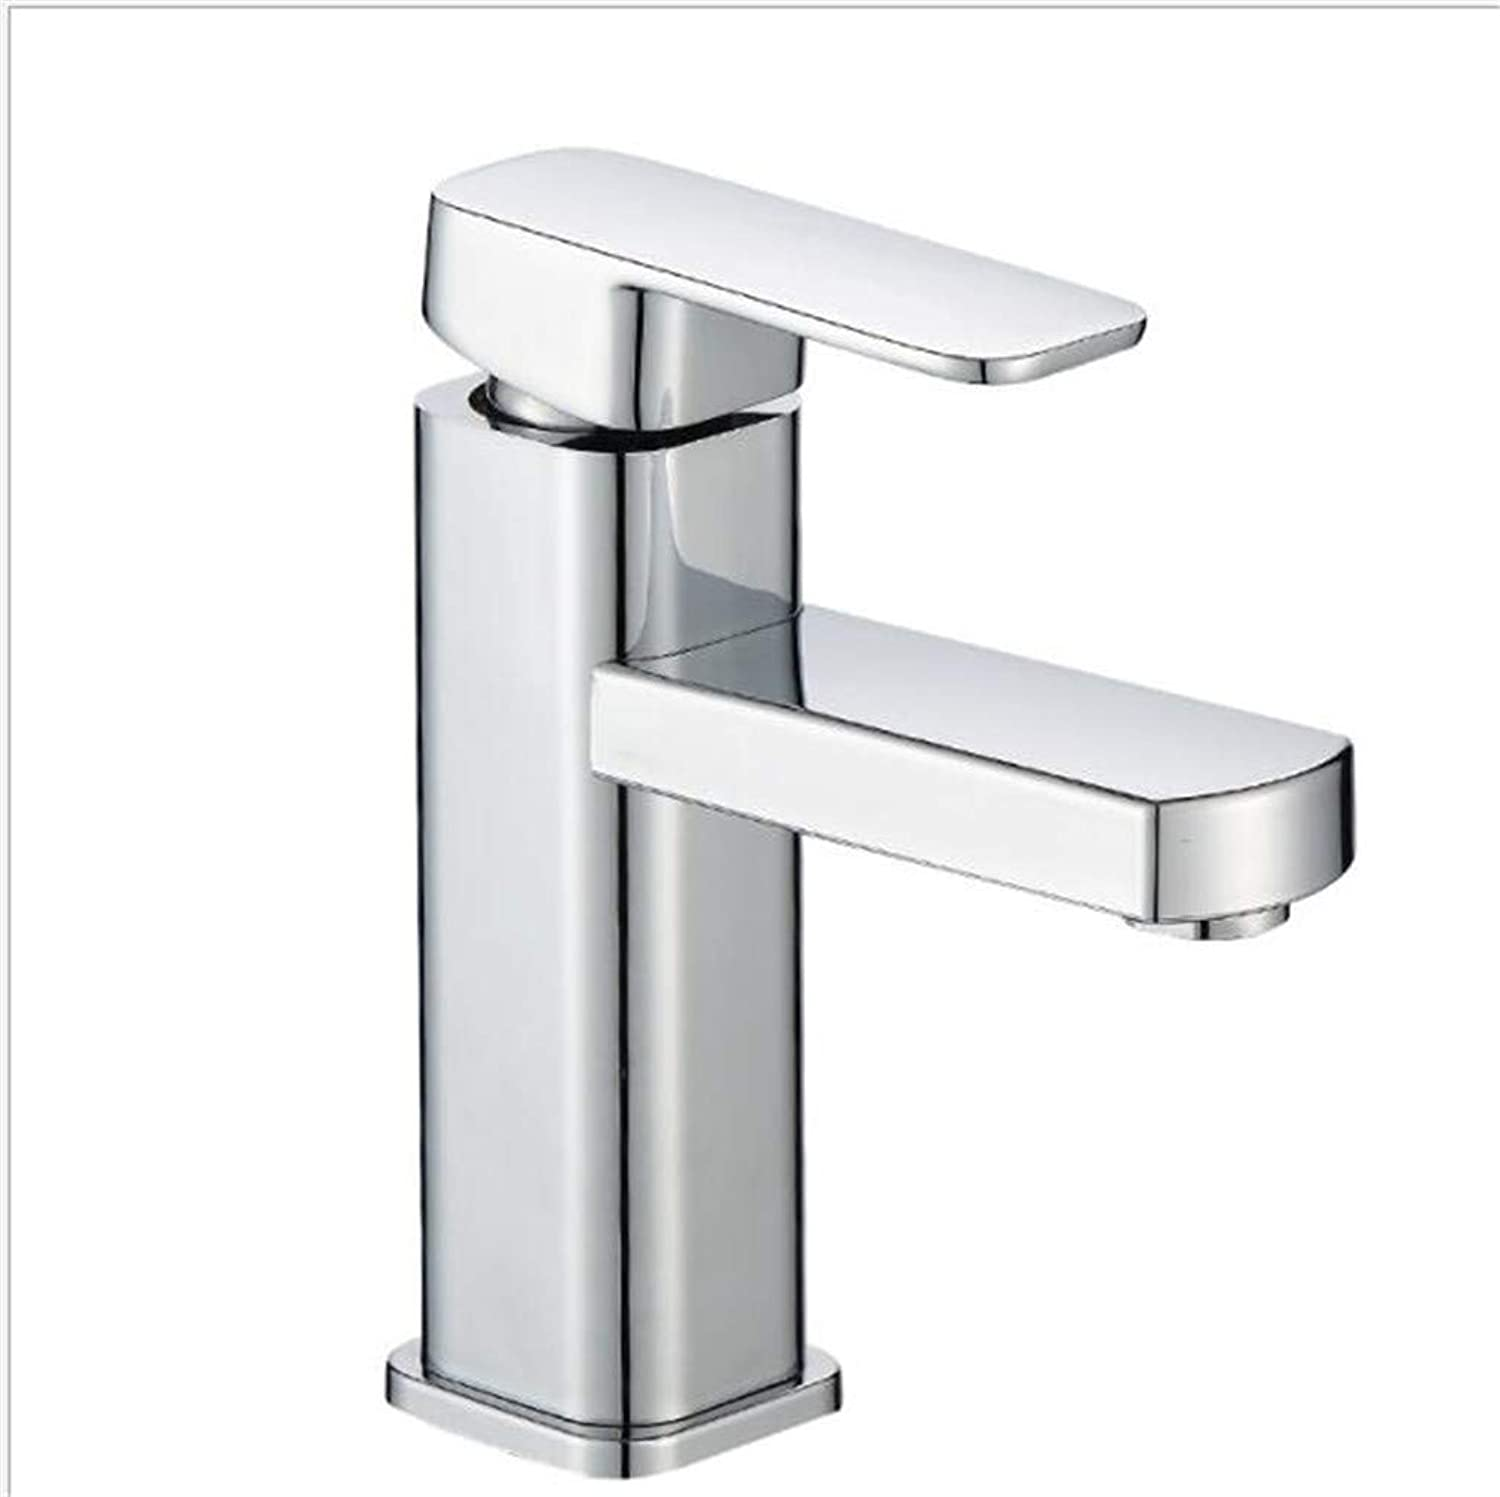 Bathroom Sink Basin Lever Mixer Tap Bathroom Plastic Steel Faucet Cold and Hot Washbasin Sink Faucet